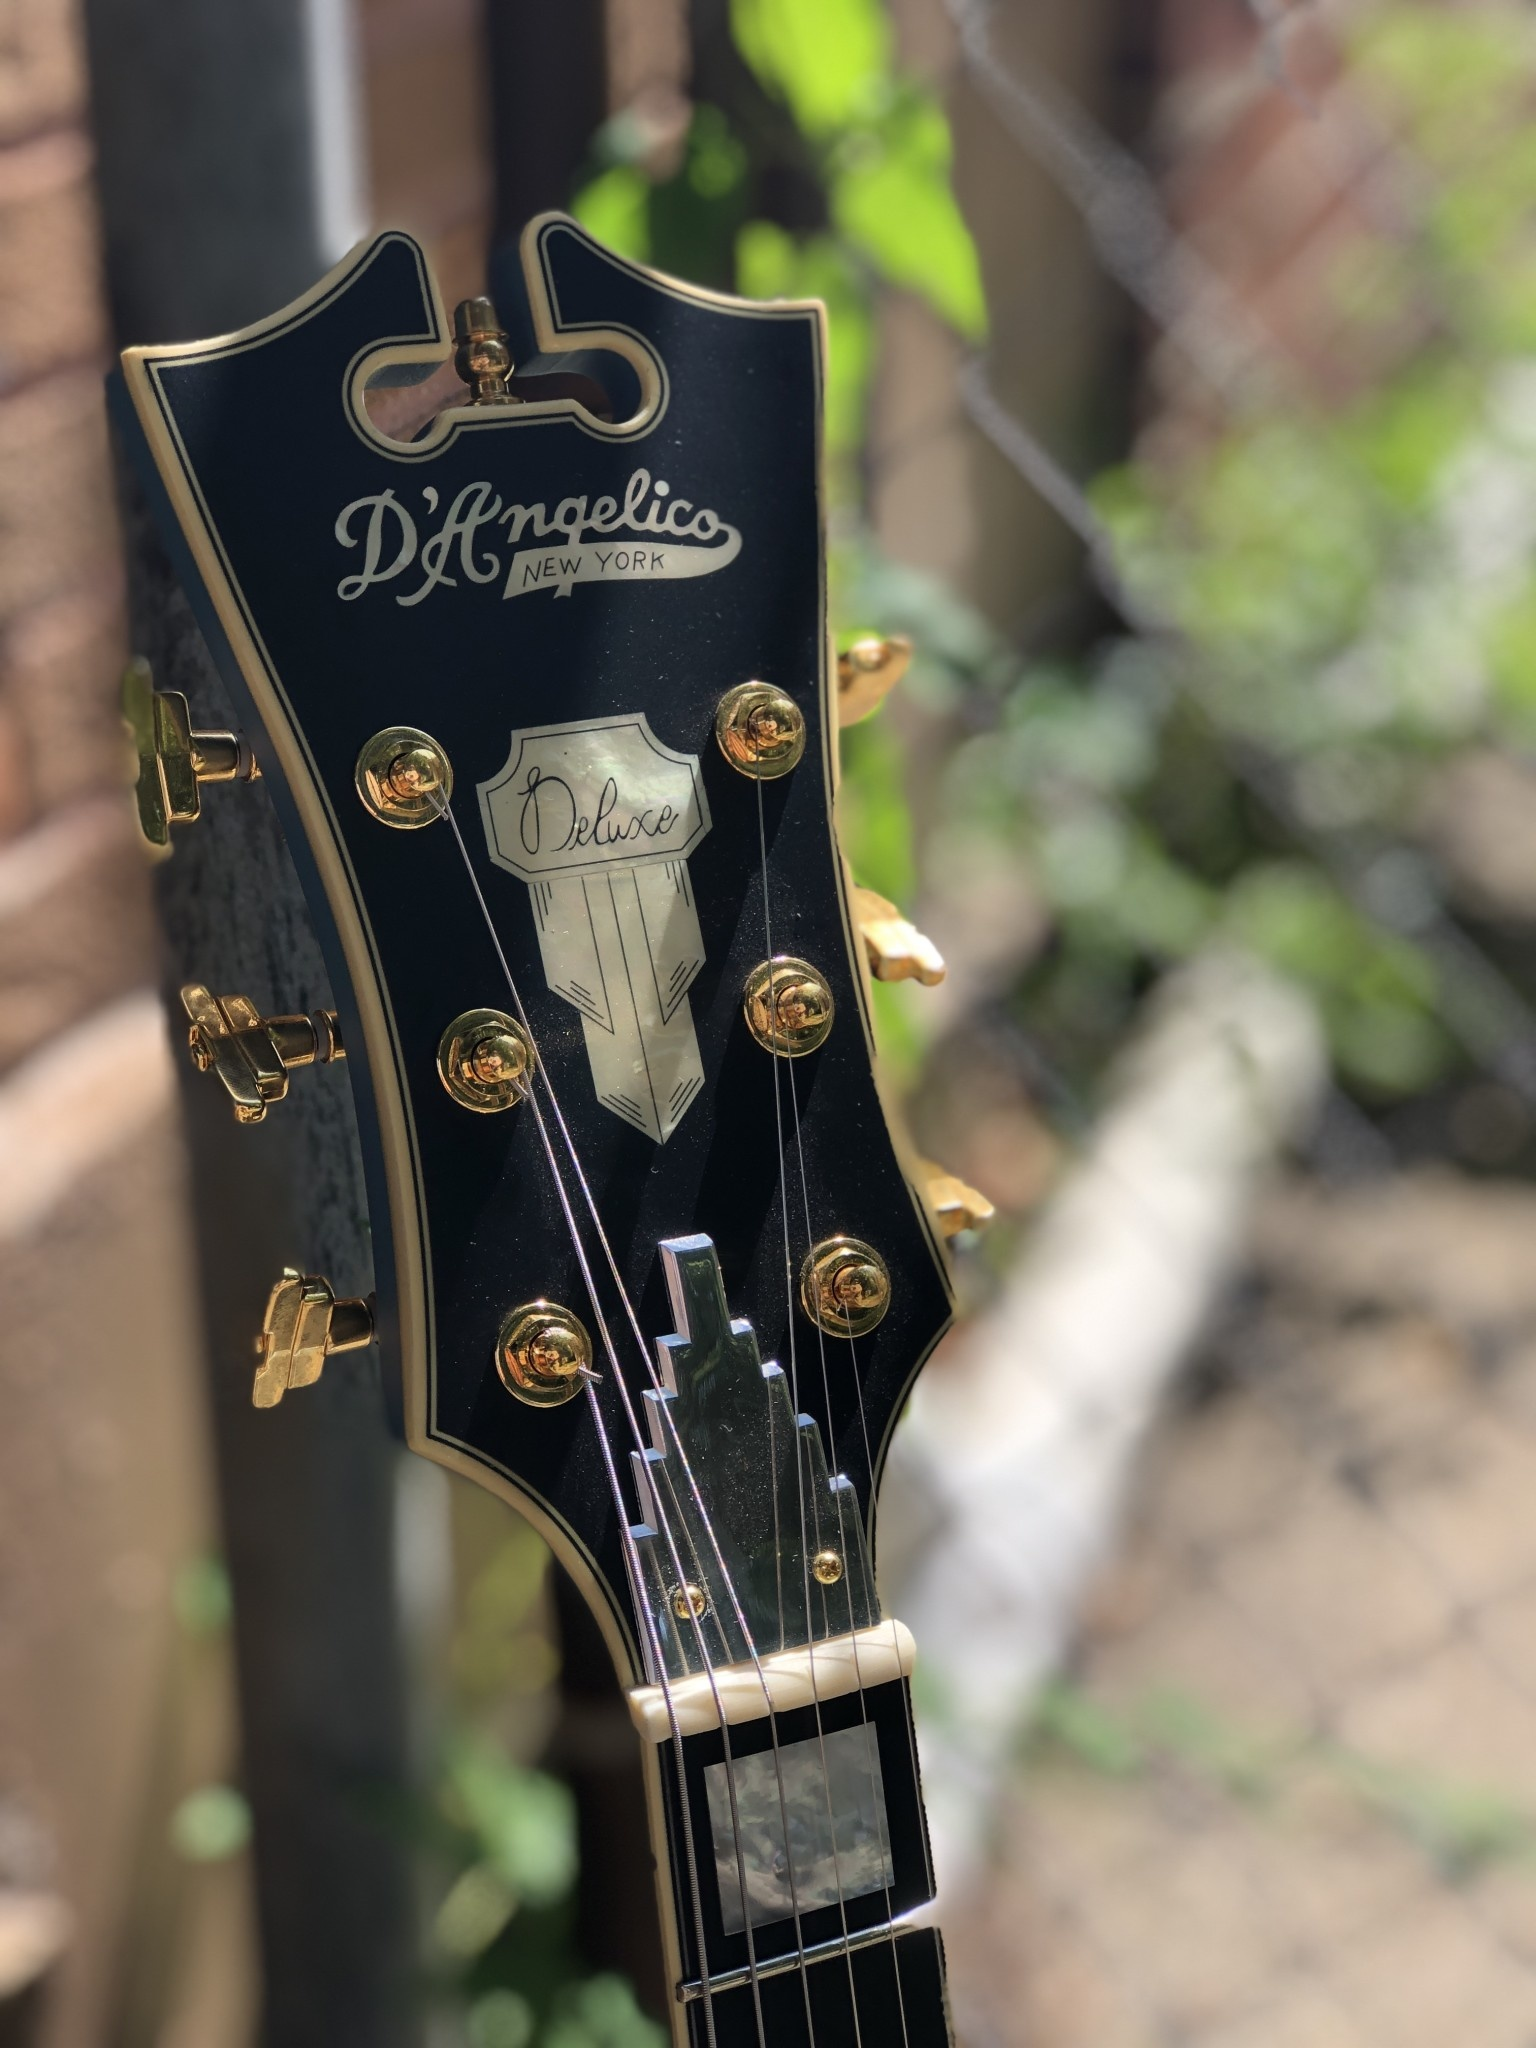 D'Angelico Deluxe DLX-175 Hollowbody - Silver-7